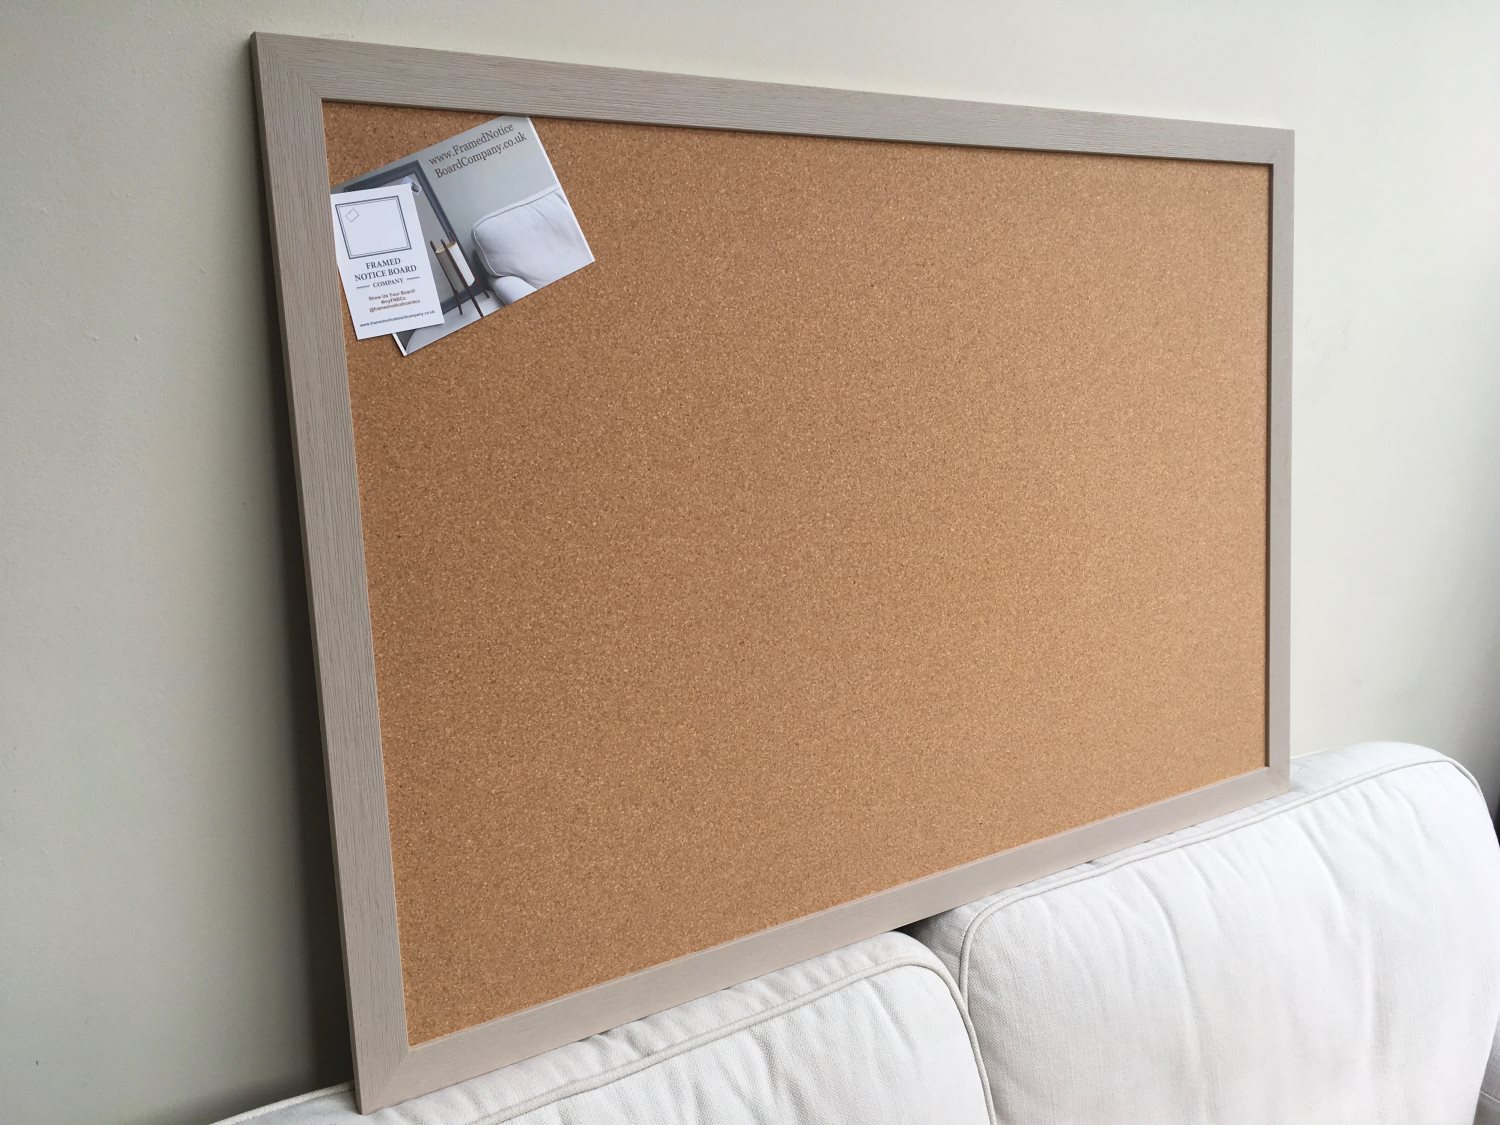 Cork Bulletin Board Large Cork Pin Board Cork Bulletin Board Cork Memo Board Cork